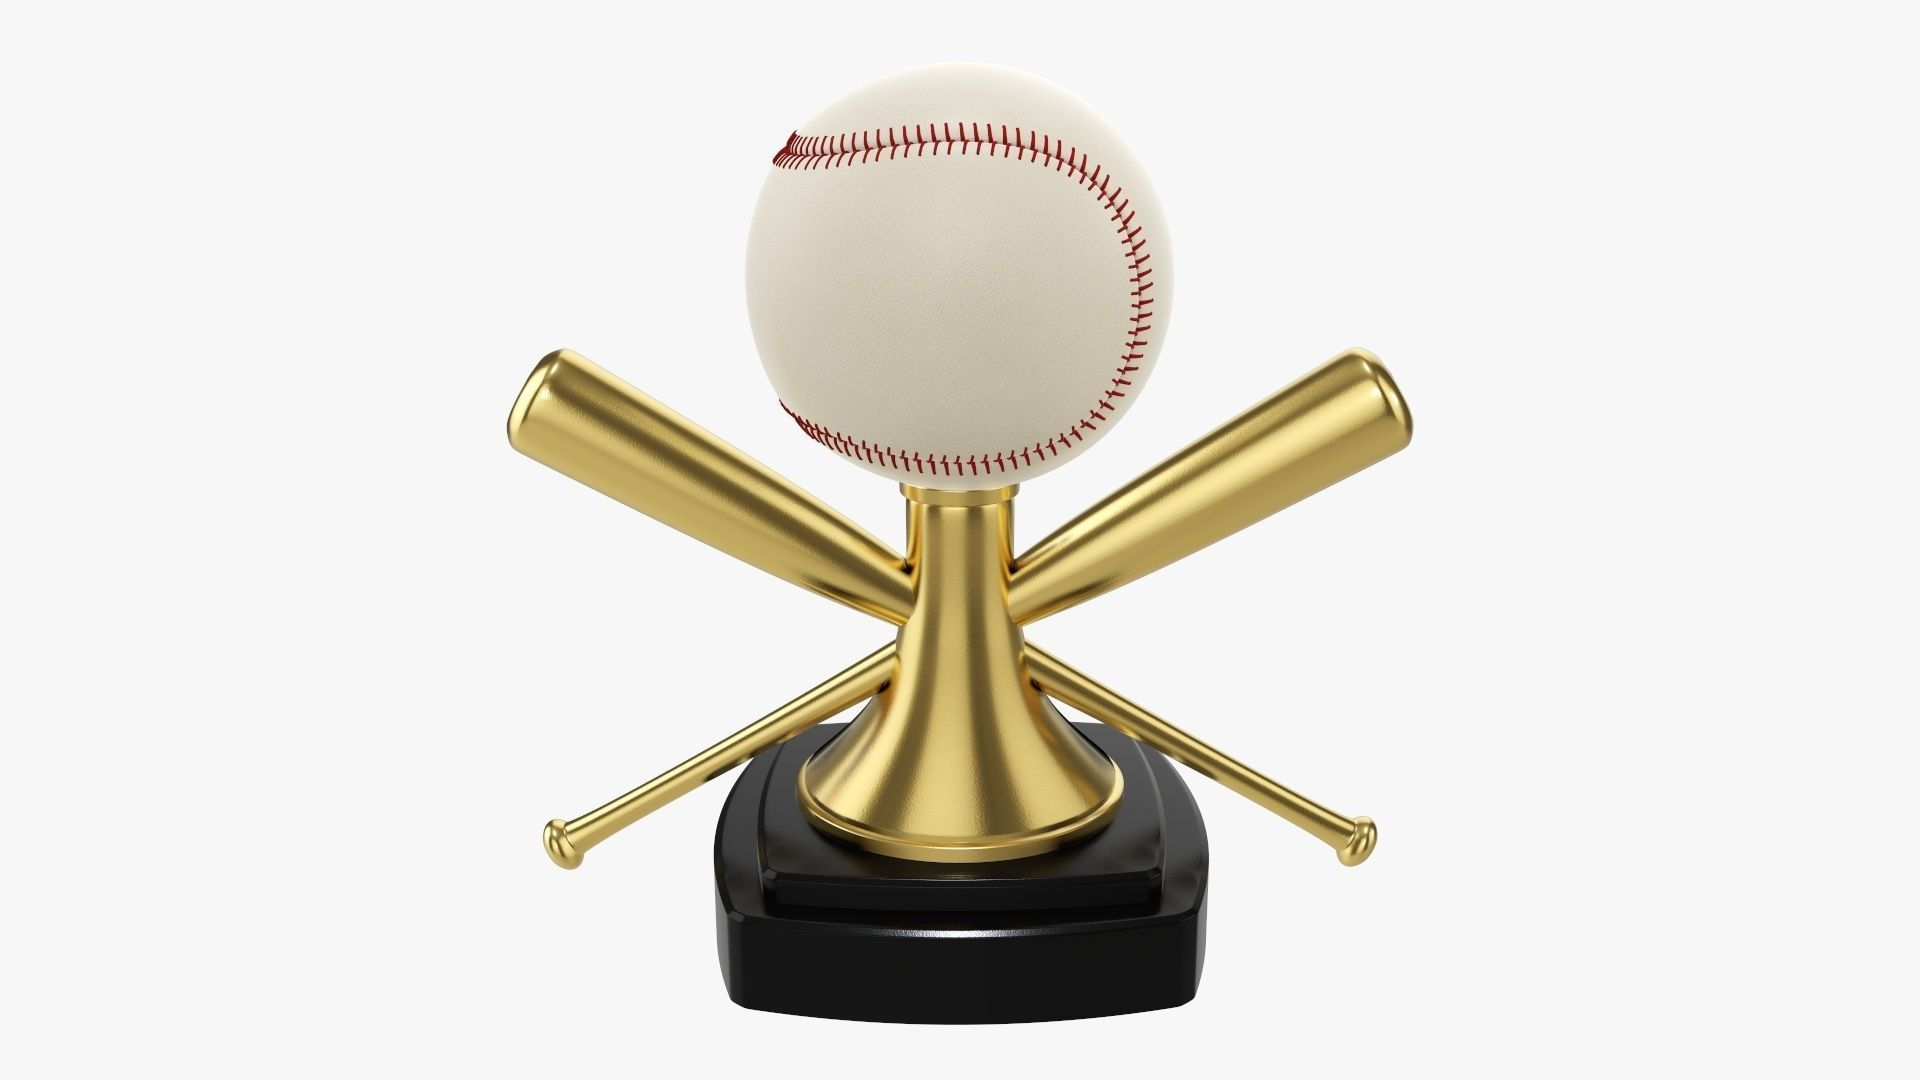 Trophy baseball ball and bats